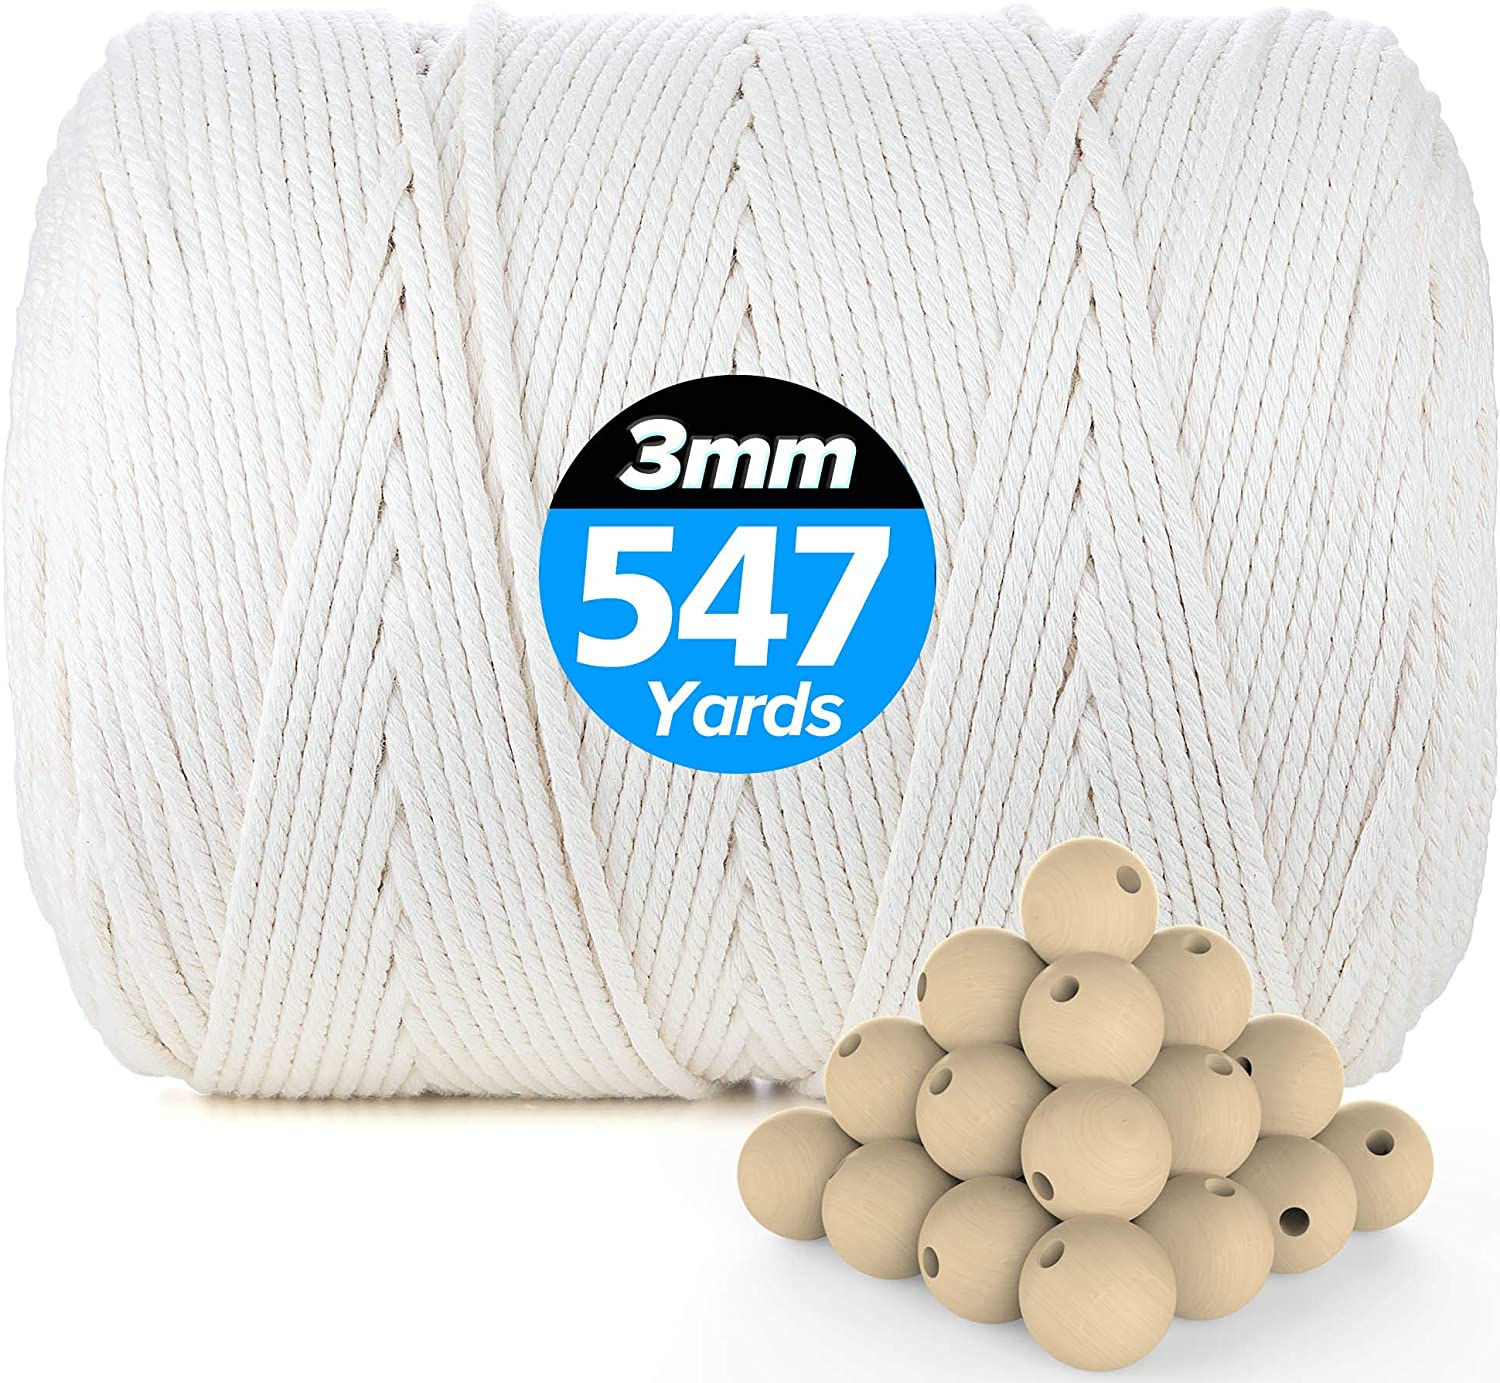 ASTARON Natural Macrame Cotton Cord Set Include 109 Yards Cotton Cord 60pcs Wood Beads 6pcs Wood Ring and 4pcs Wooden Stick for Crafts and Home Decorations